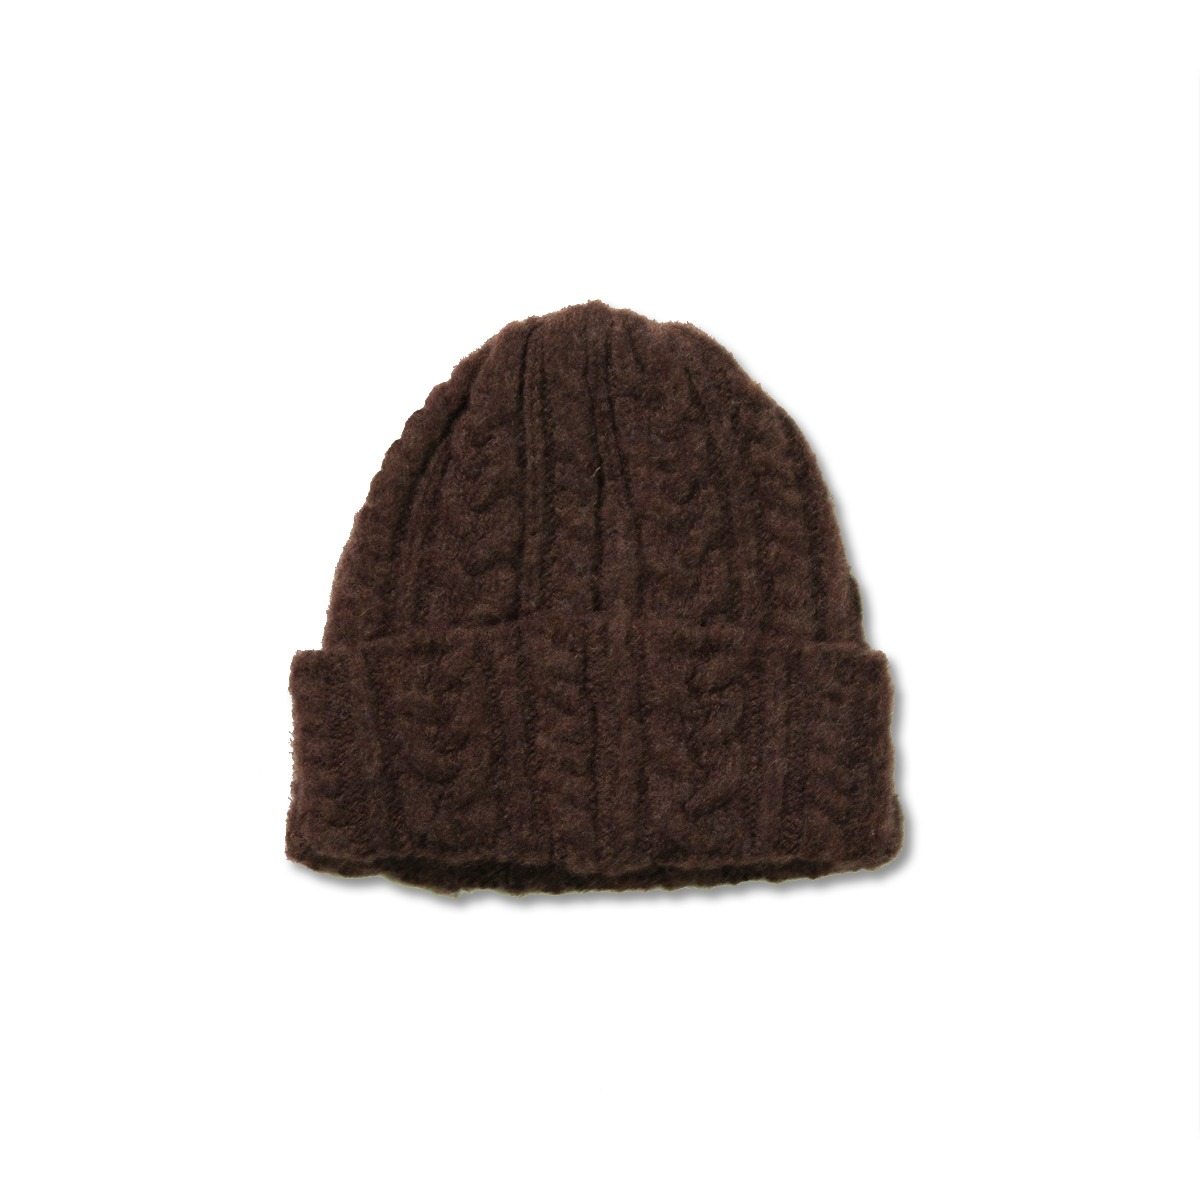 [HOWLIN] CABLE FESTIVAL HAT 'BROWN'